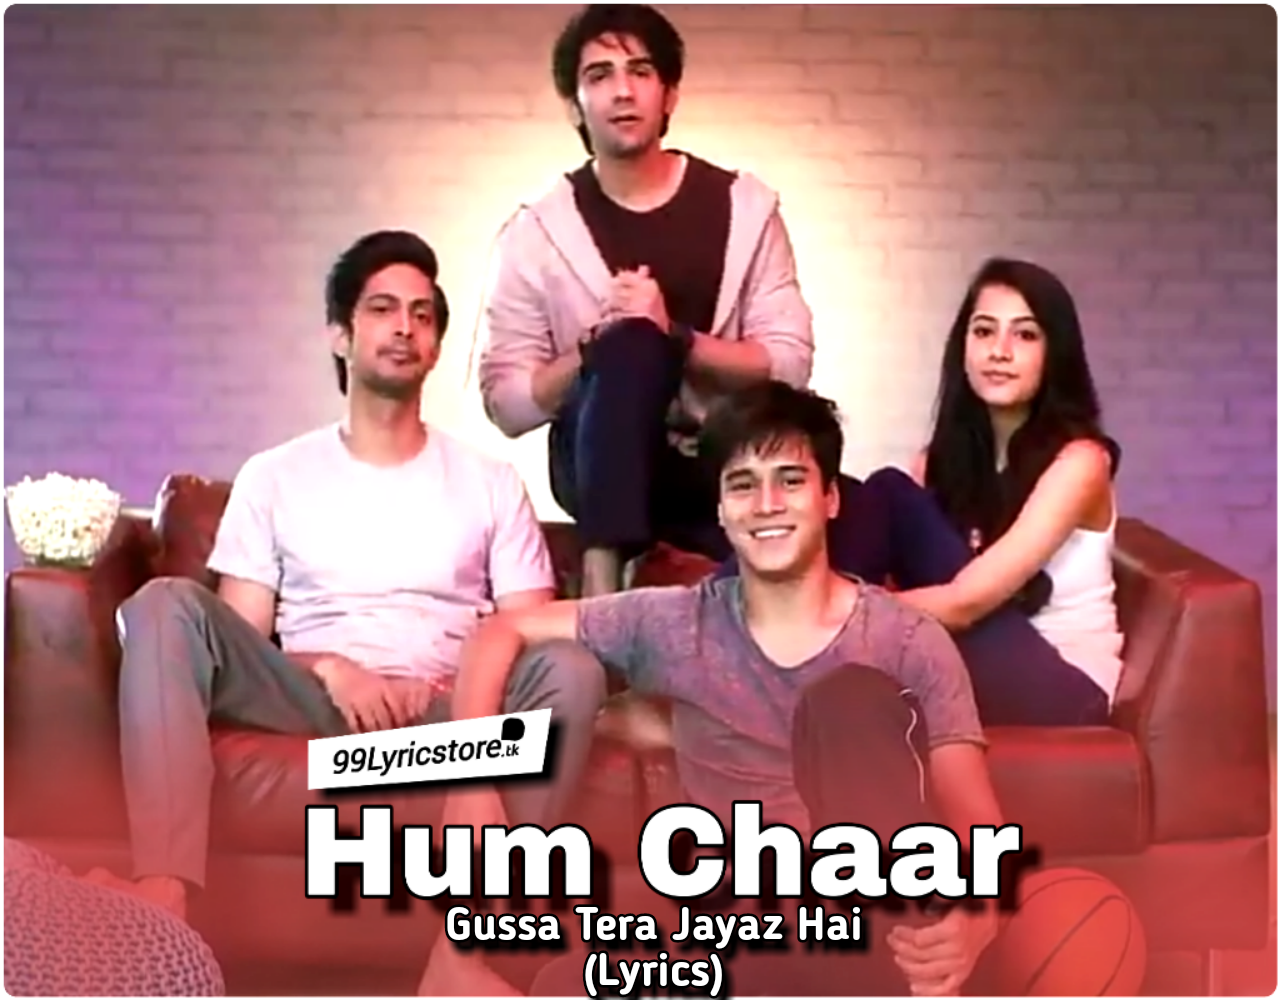 Gussa Tera Jayaz Hai Lyrics hum char, hum char movie song lyrics, hum char movie song movie, Asees Kaur Song hum Chaar Lyrics, Hum char gusa Tera Jayaz hai lyrics and images,